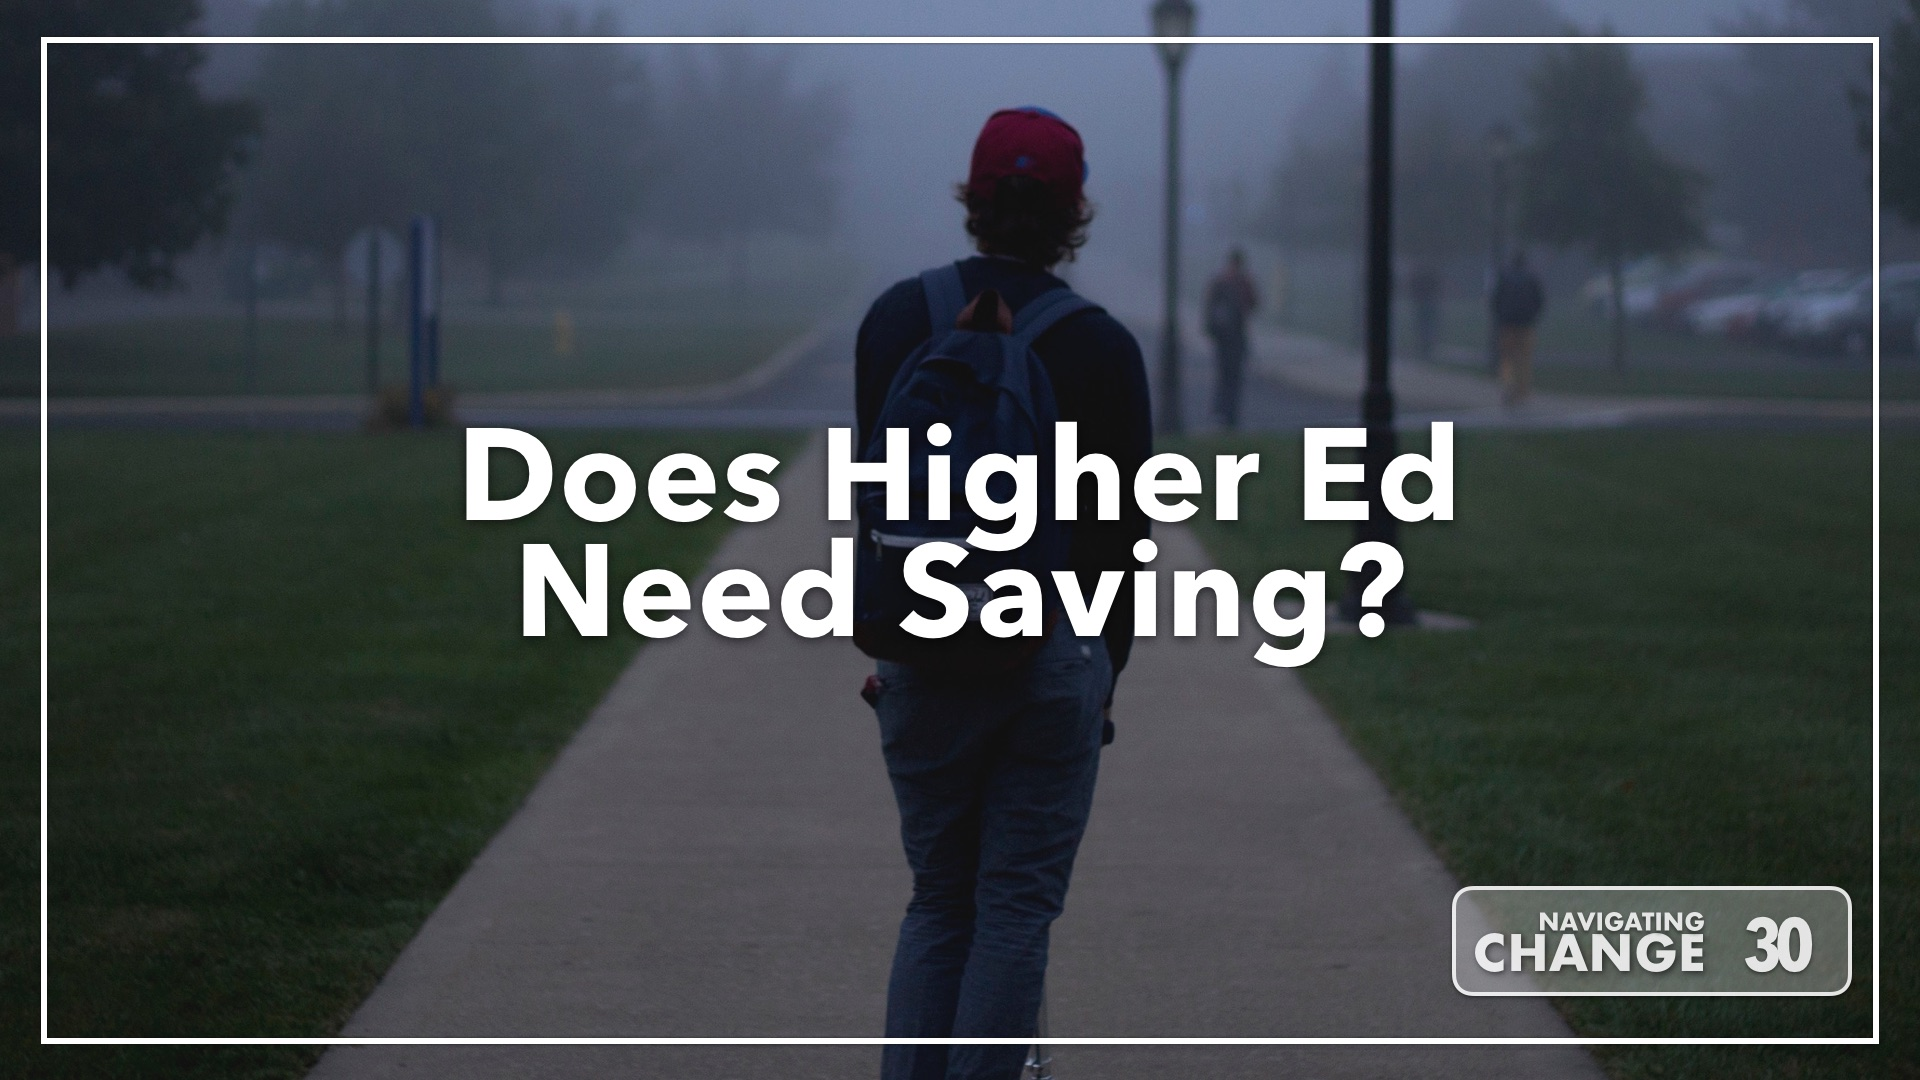 Listen to Does Higher Ed Need Saving on Navigating Change The Education Podcast